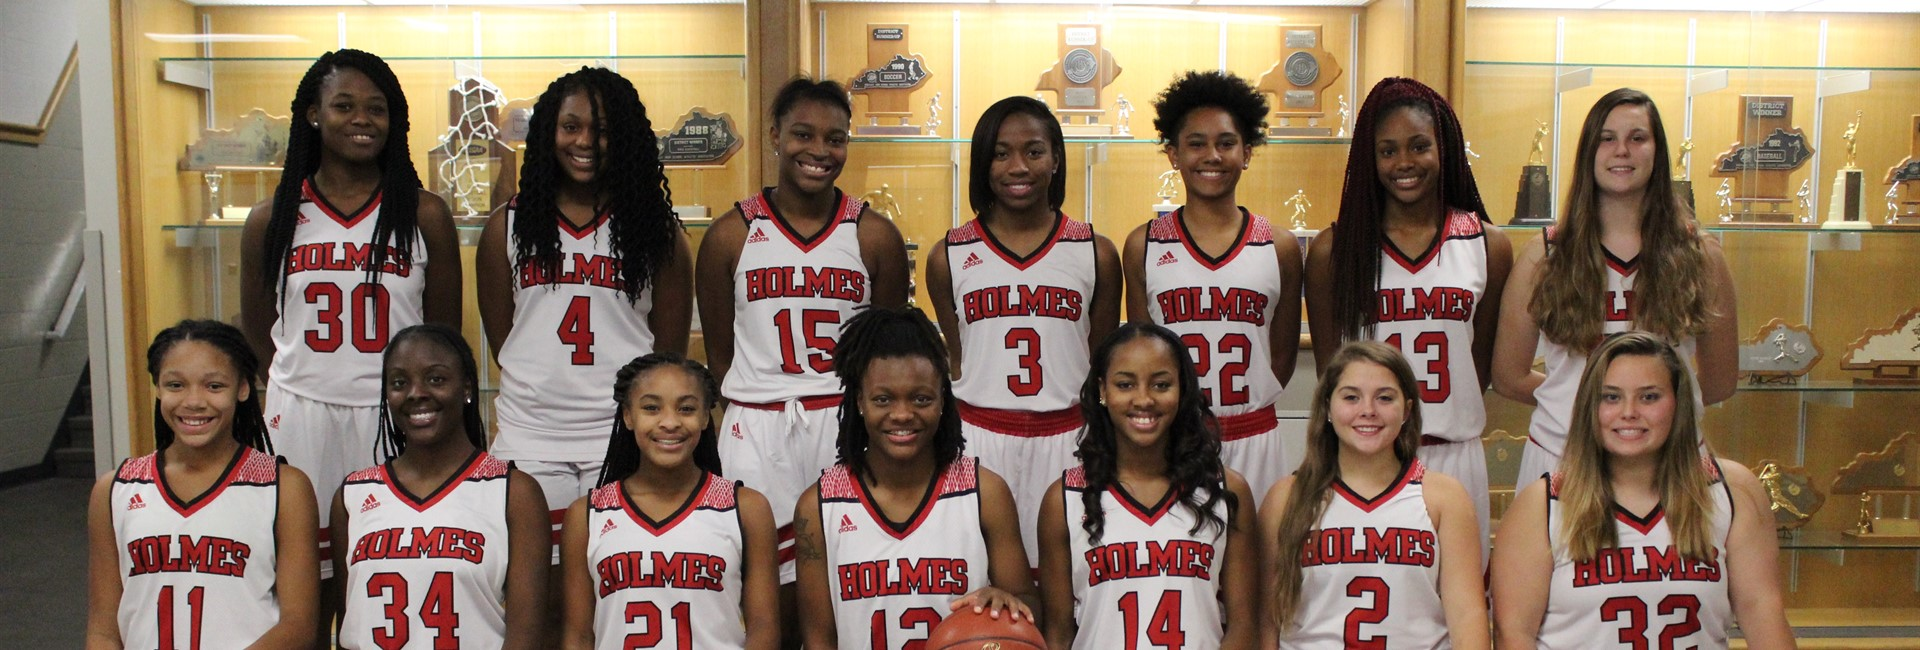 Holmes High School Girls Basketball Team